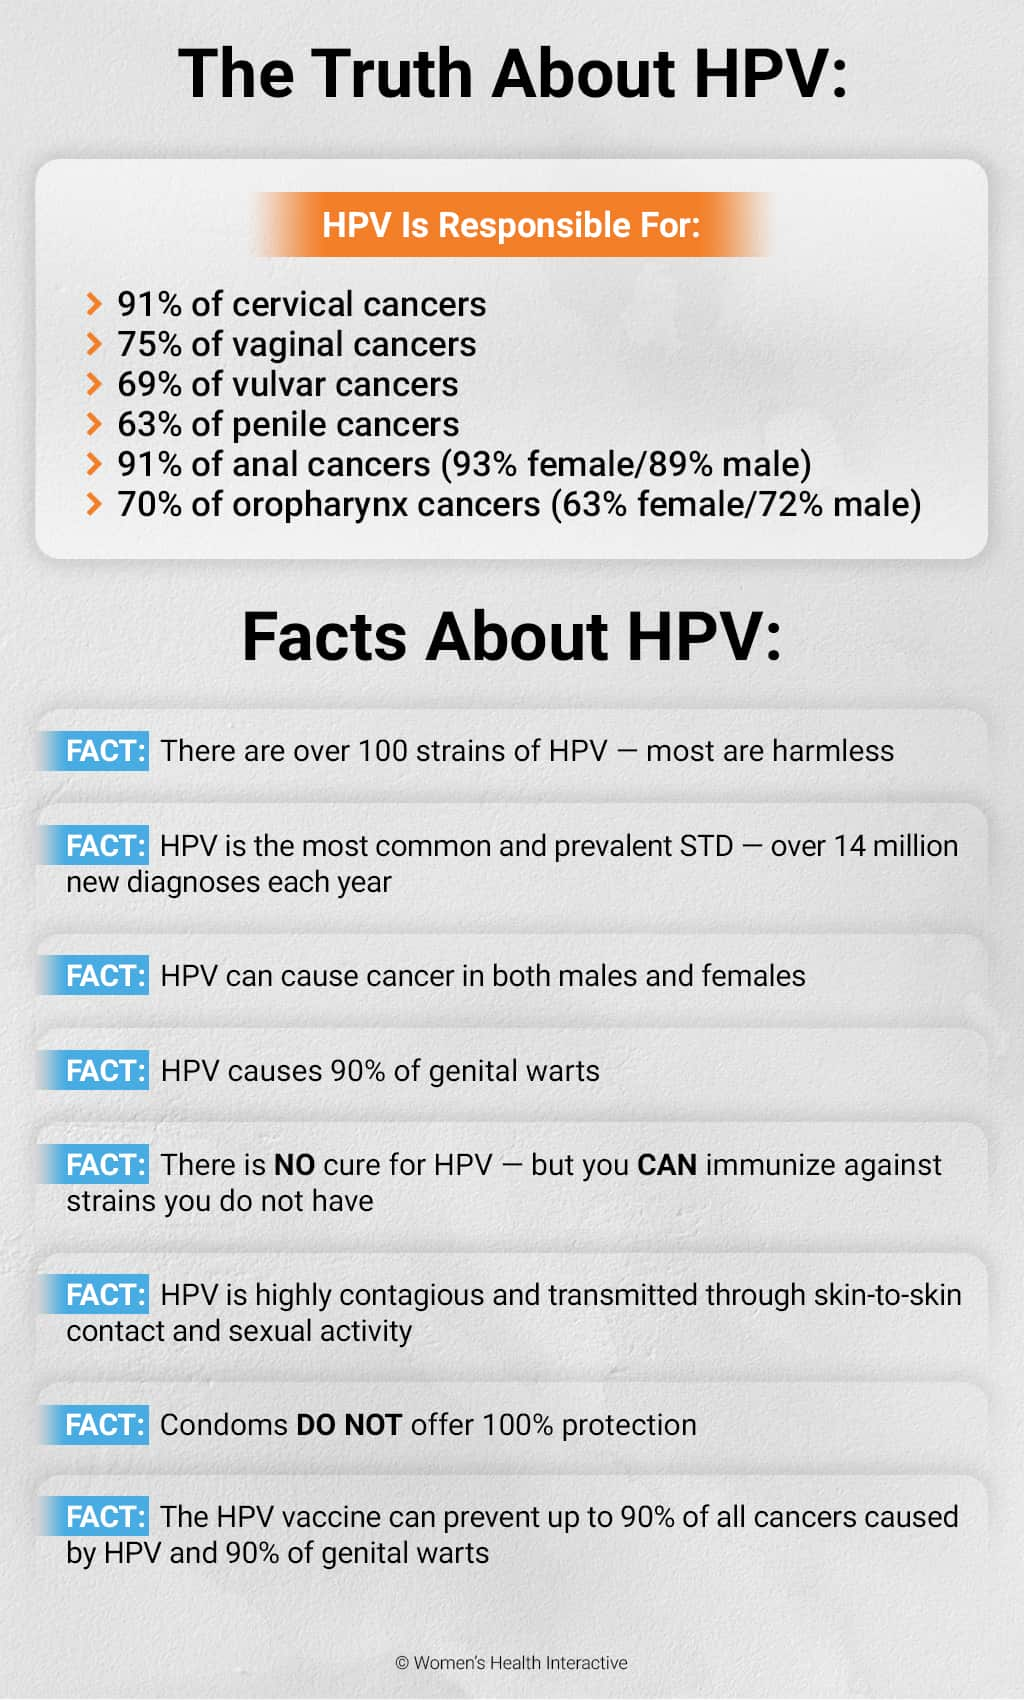 Infographic Listing Various Truths, Statistics, And Facts About HPV and the HPV Vaccine